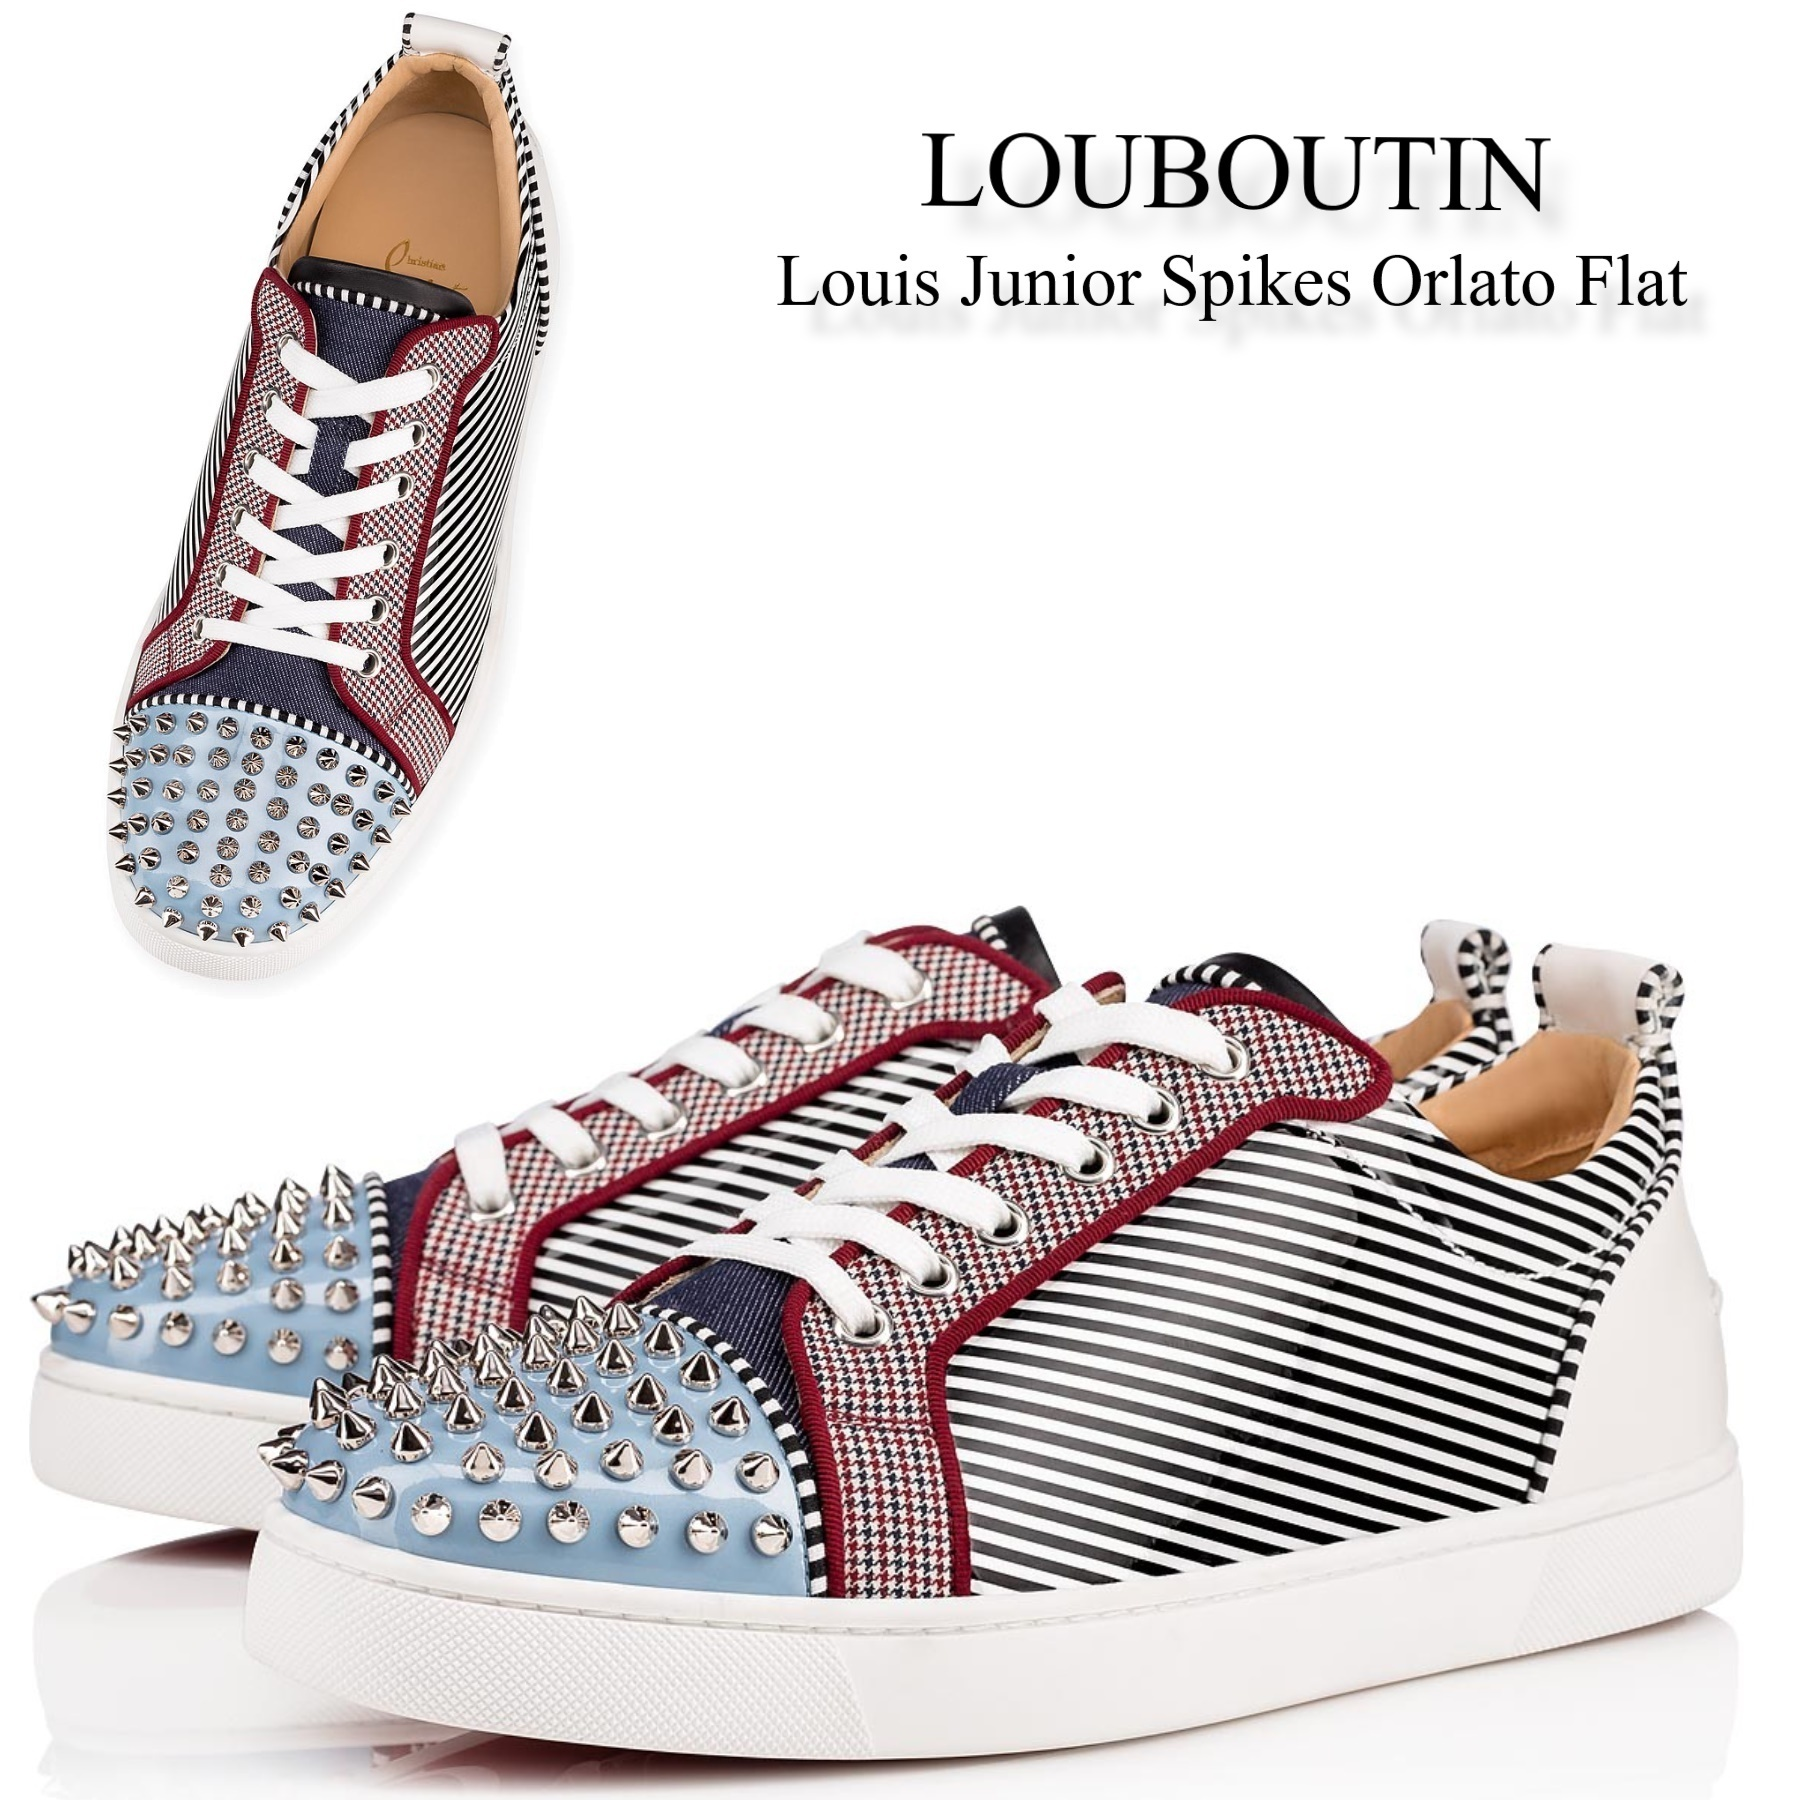 sneakers for cheap 442b6 b4cc2 Christian Louboutin 2019 SS Sneakers (Louis Junior Spikes Orlato Flat,  1191202CMA3)